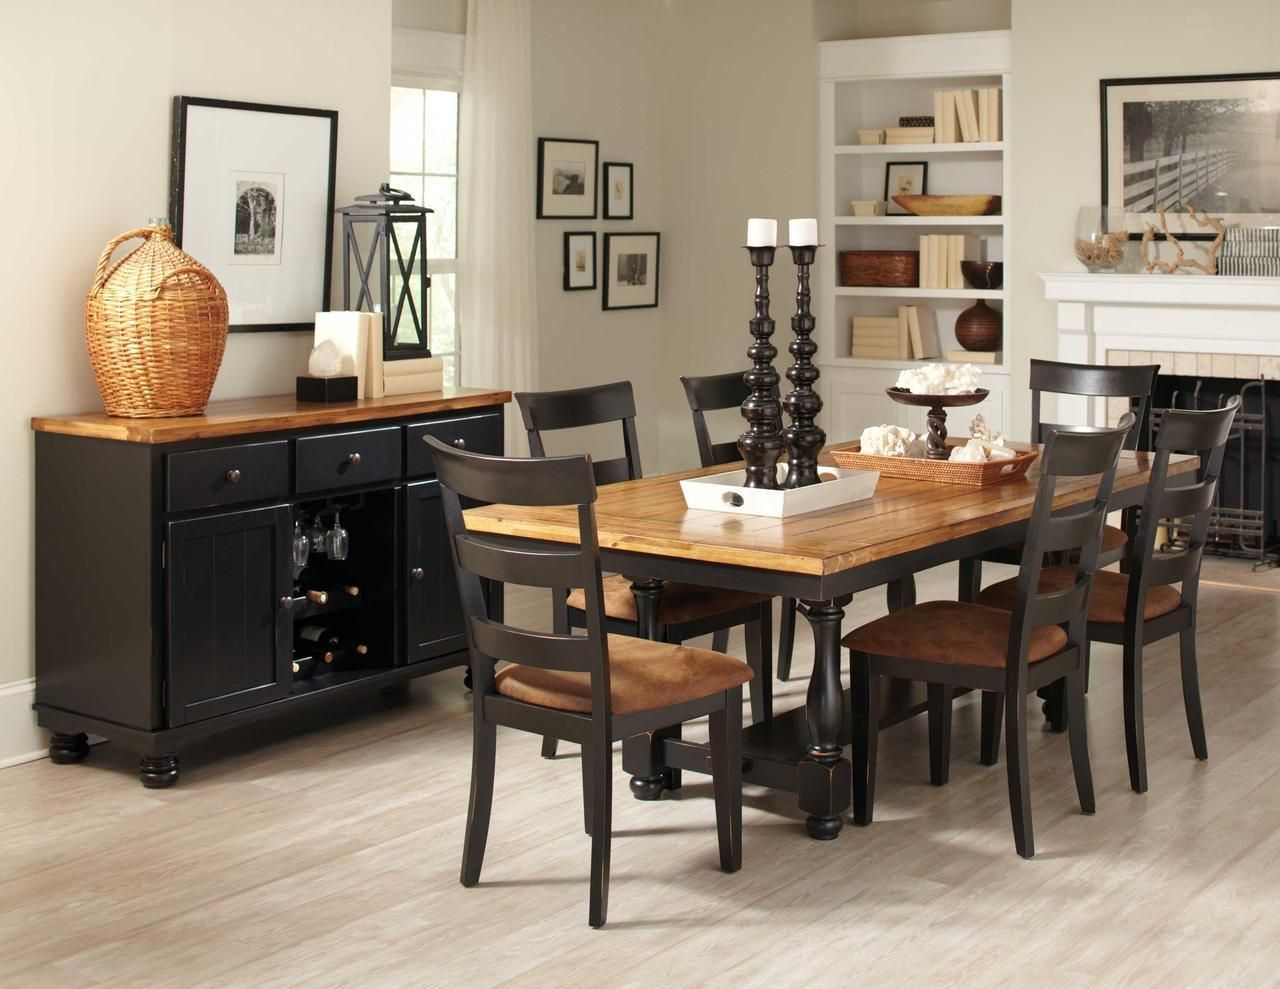 Marvella Rustic Amber Black Country Dining Table Set | Country